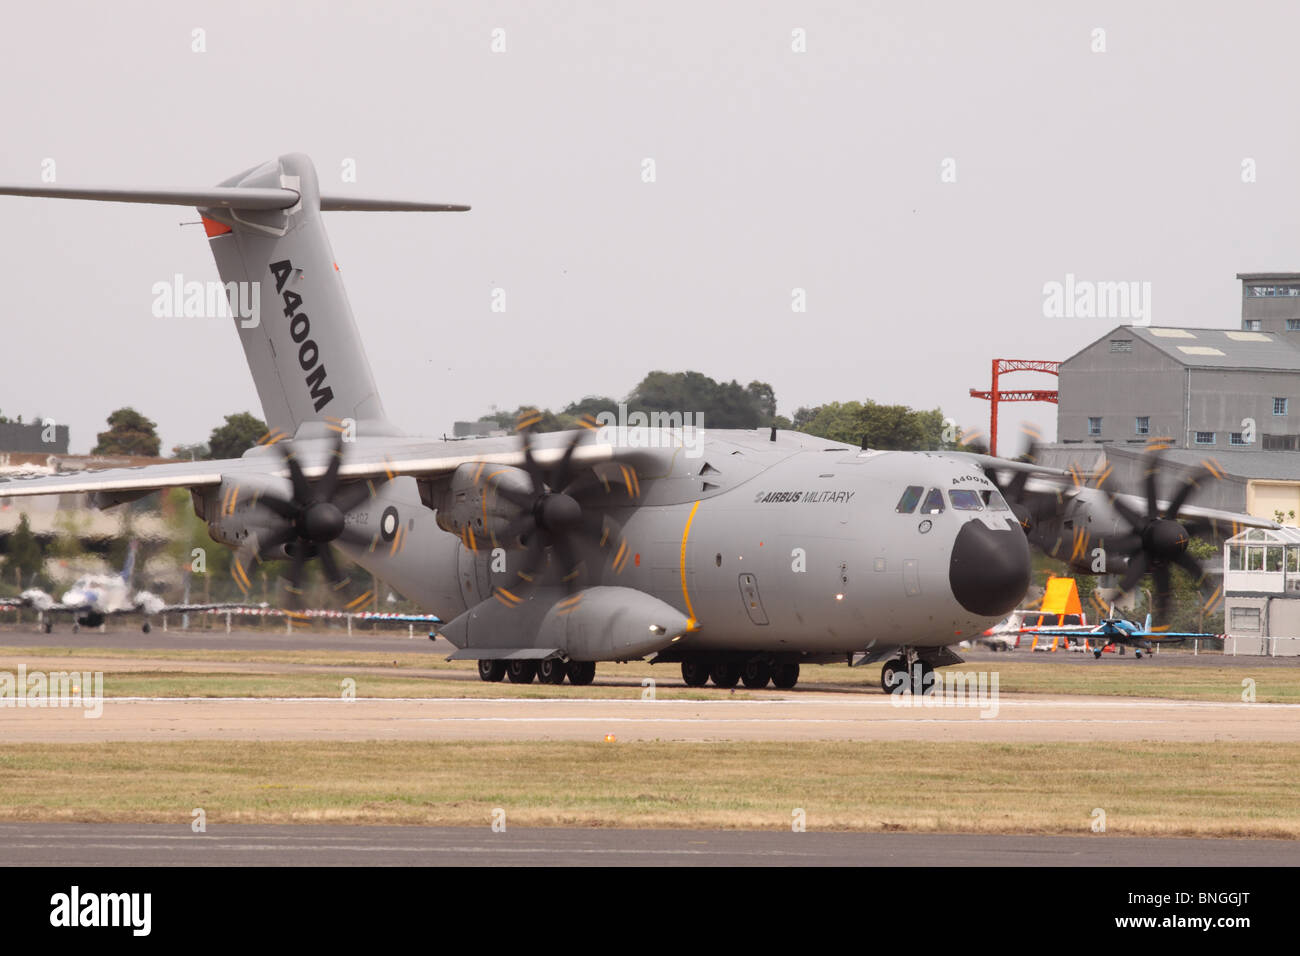 Airbus A400M military transporter aircraft prototype at Farnborough Air Show July 2010 - Stock Image